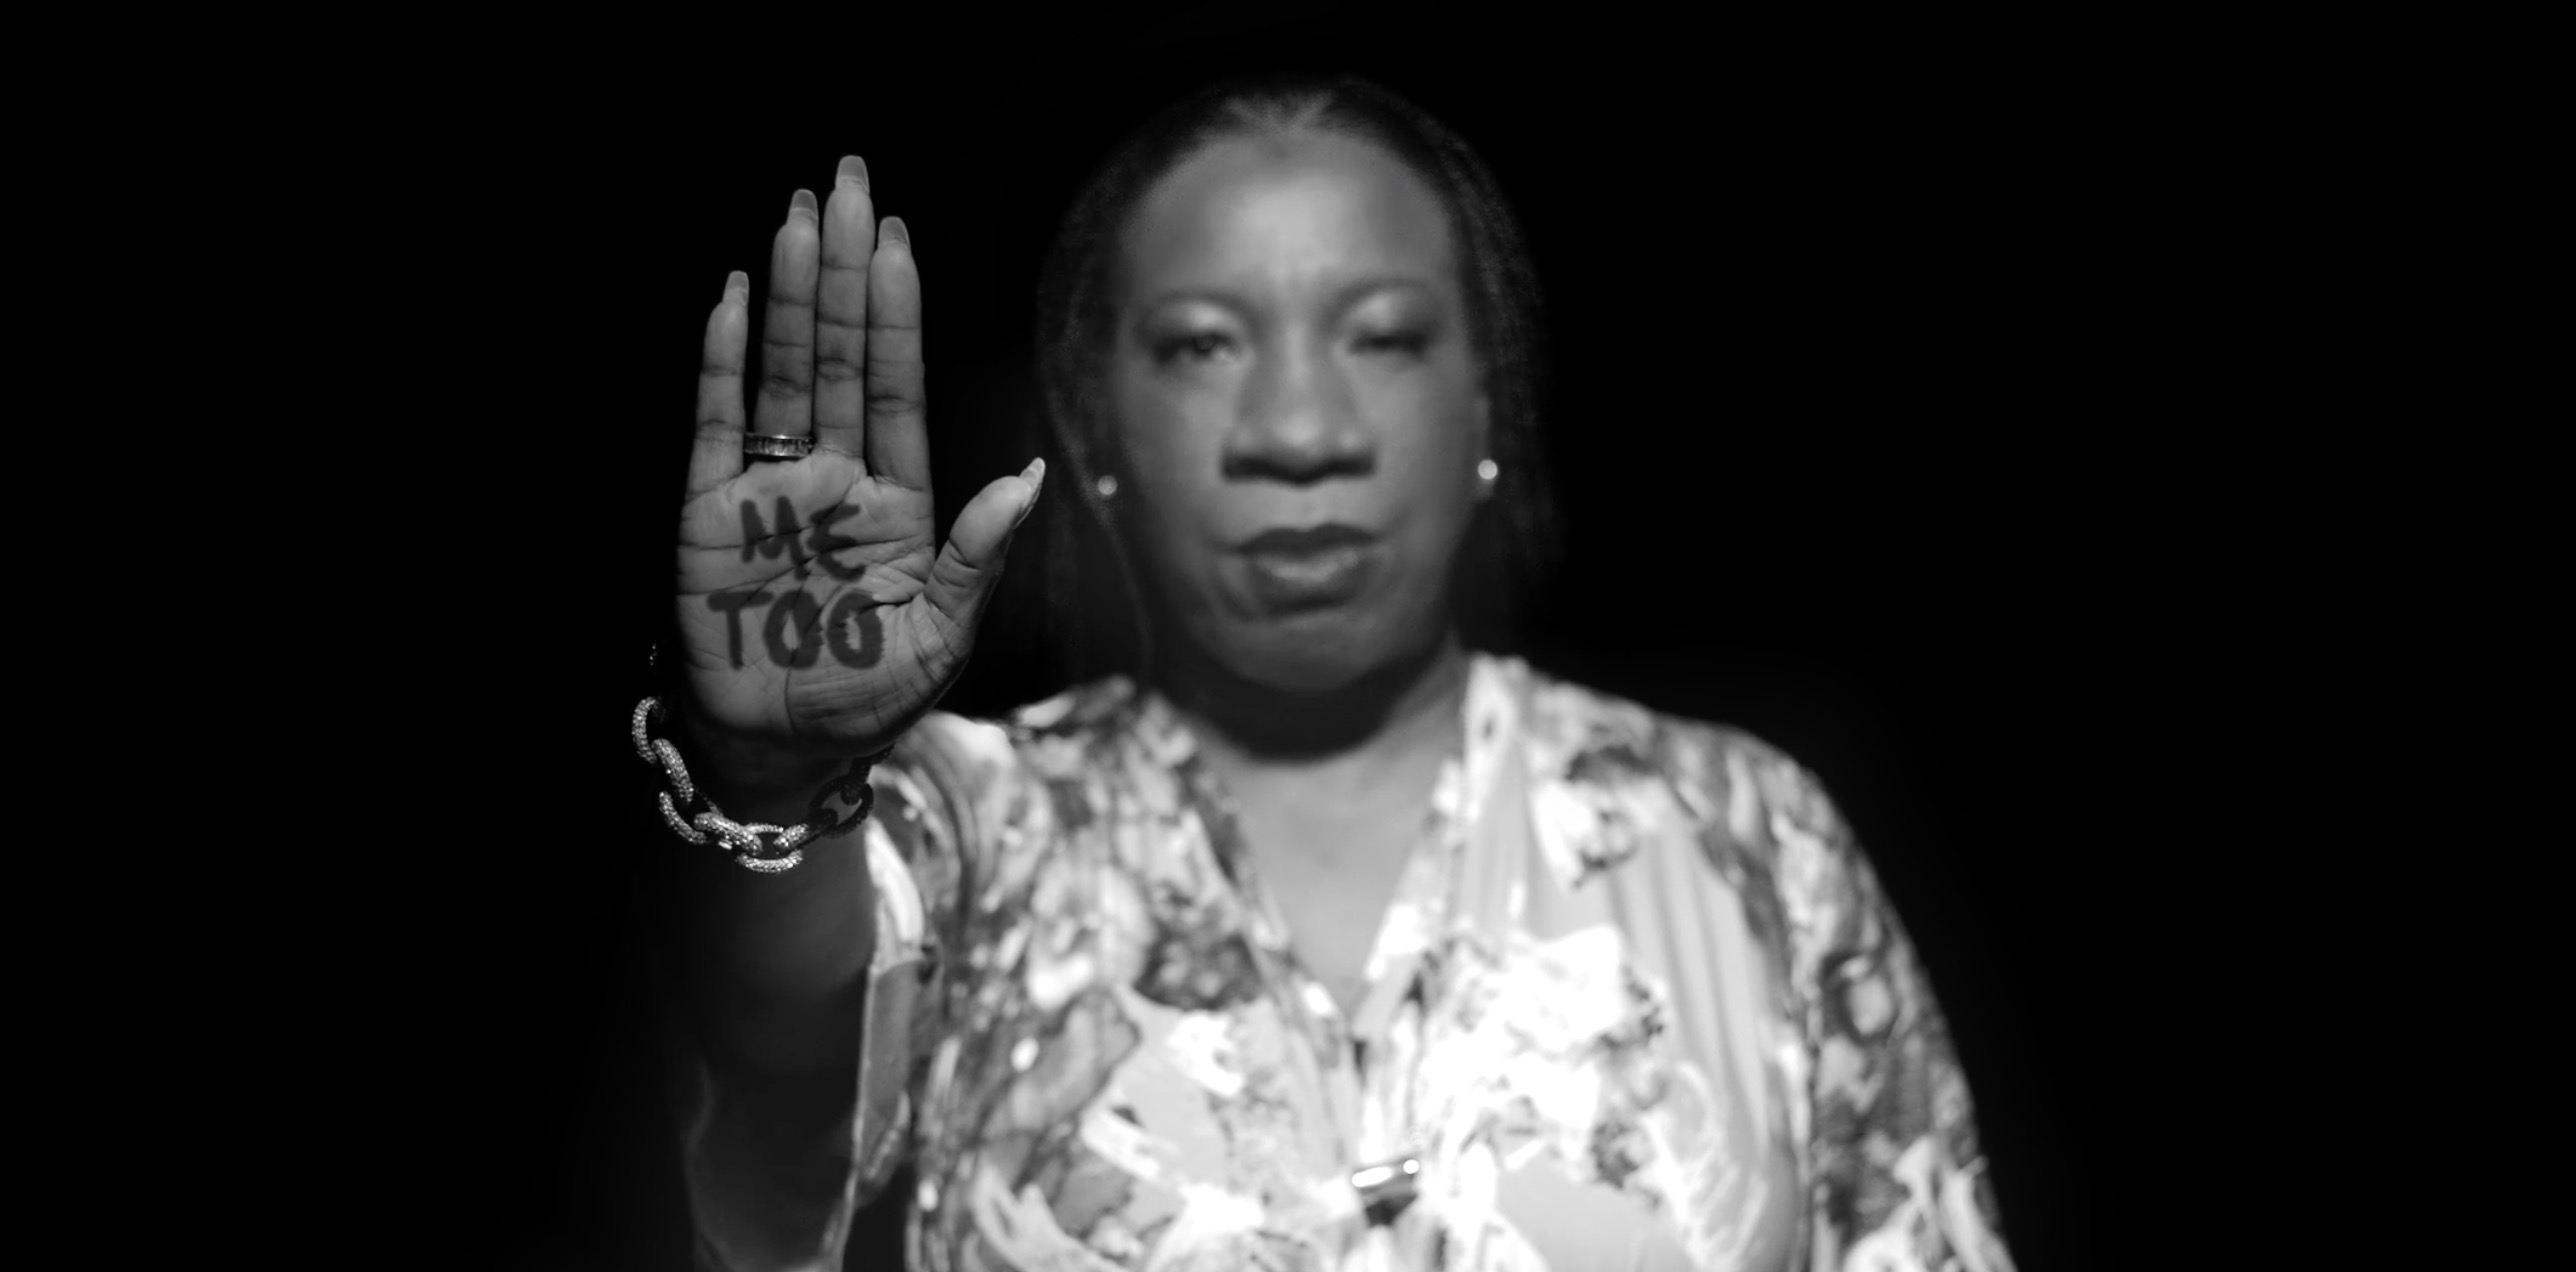 #MeToo Founder Tarana Burke to Speak at Gustavus - Burke ...